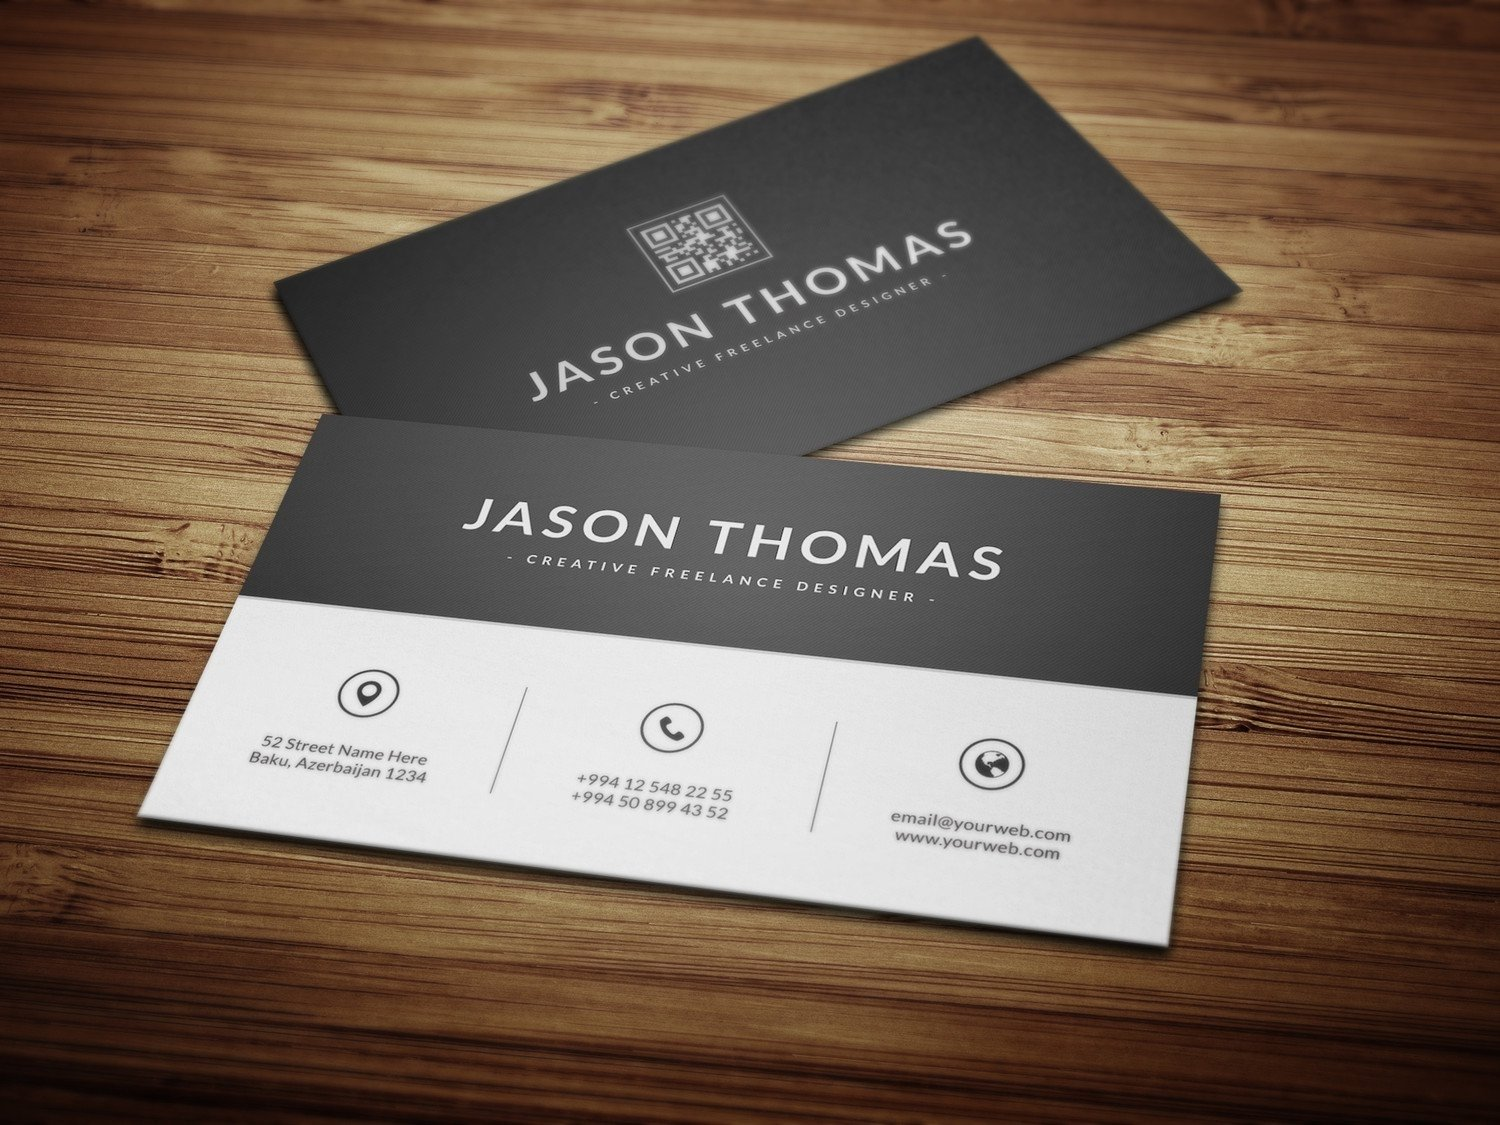 pretty ideas for business cards photos - business card ideas